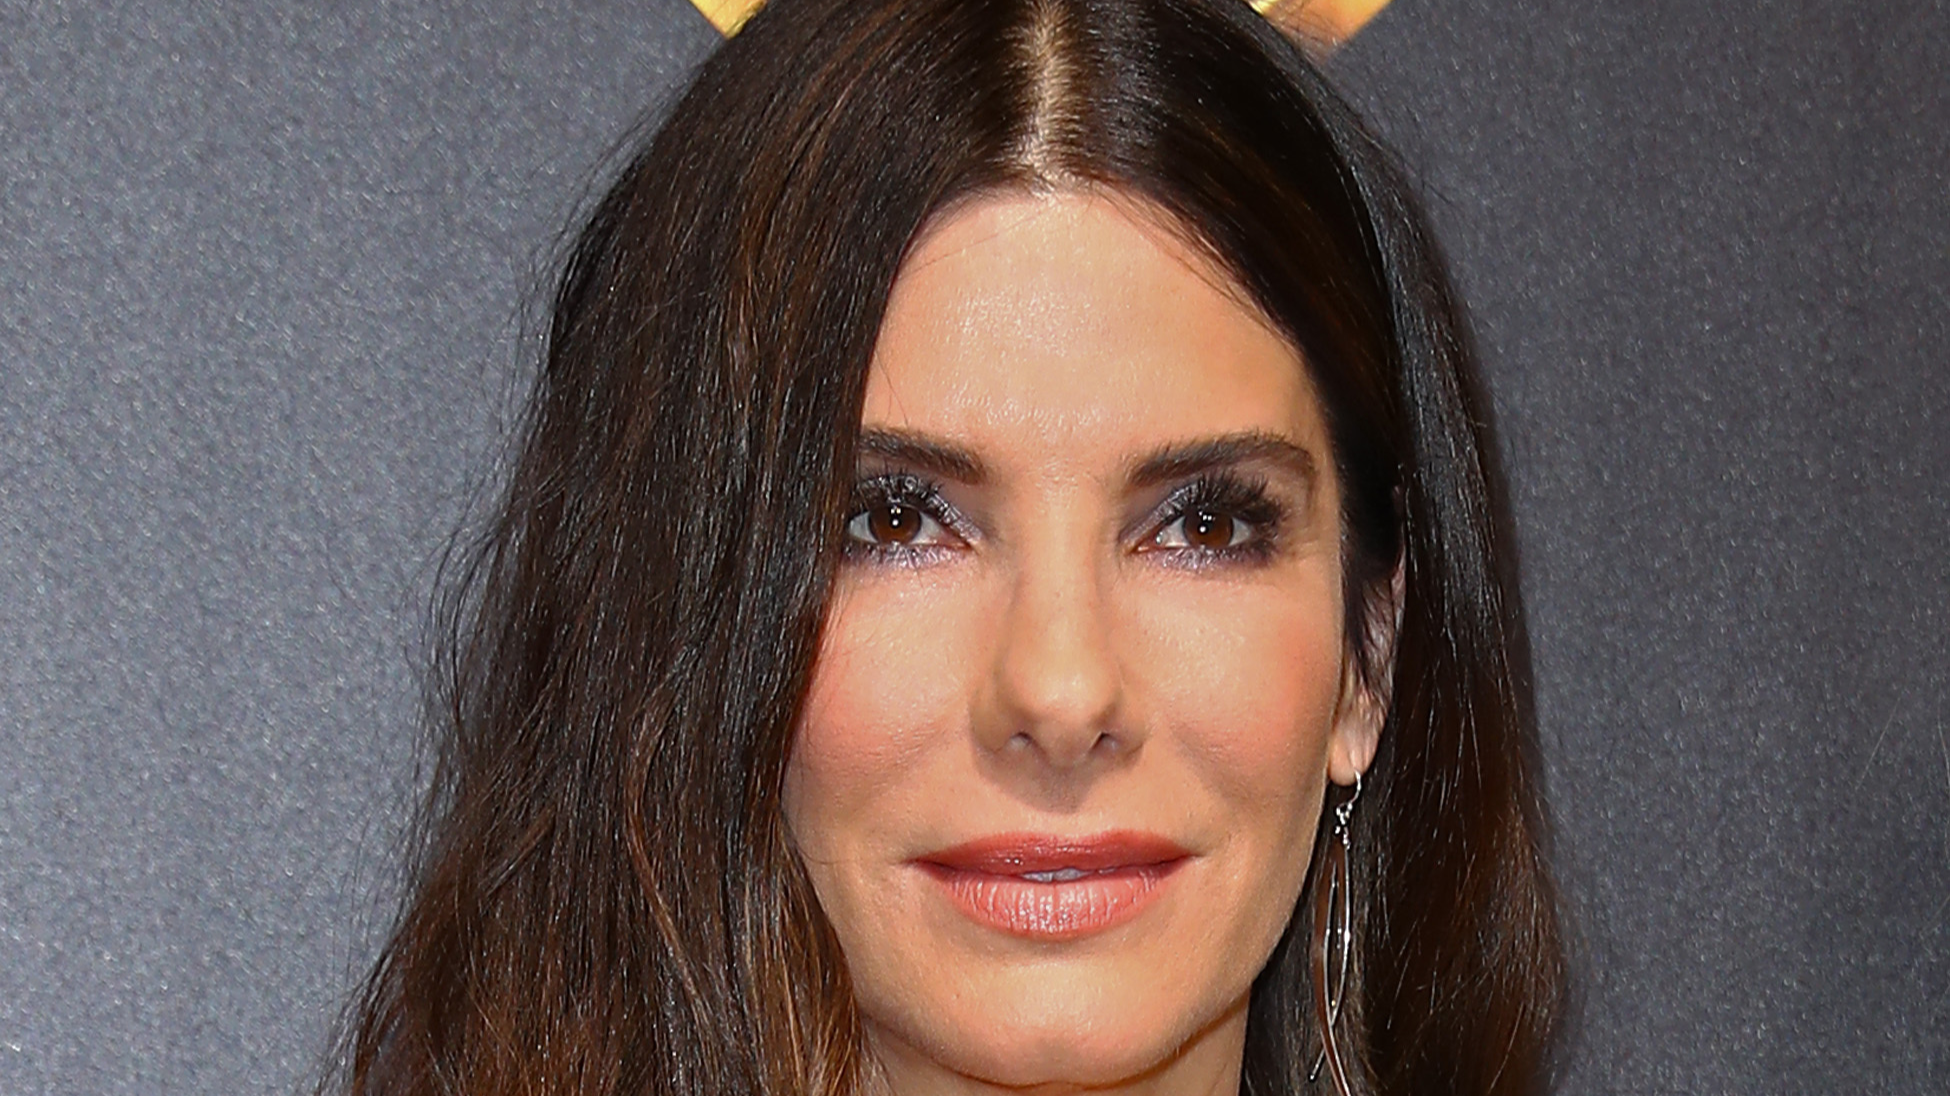 Sandra Bullock Has Facials Made From Korean Babies' Foreskins - Yep